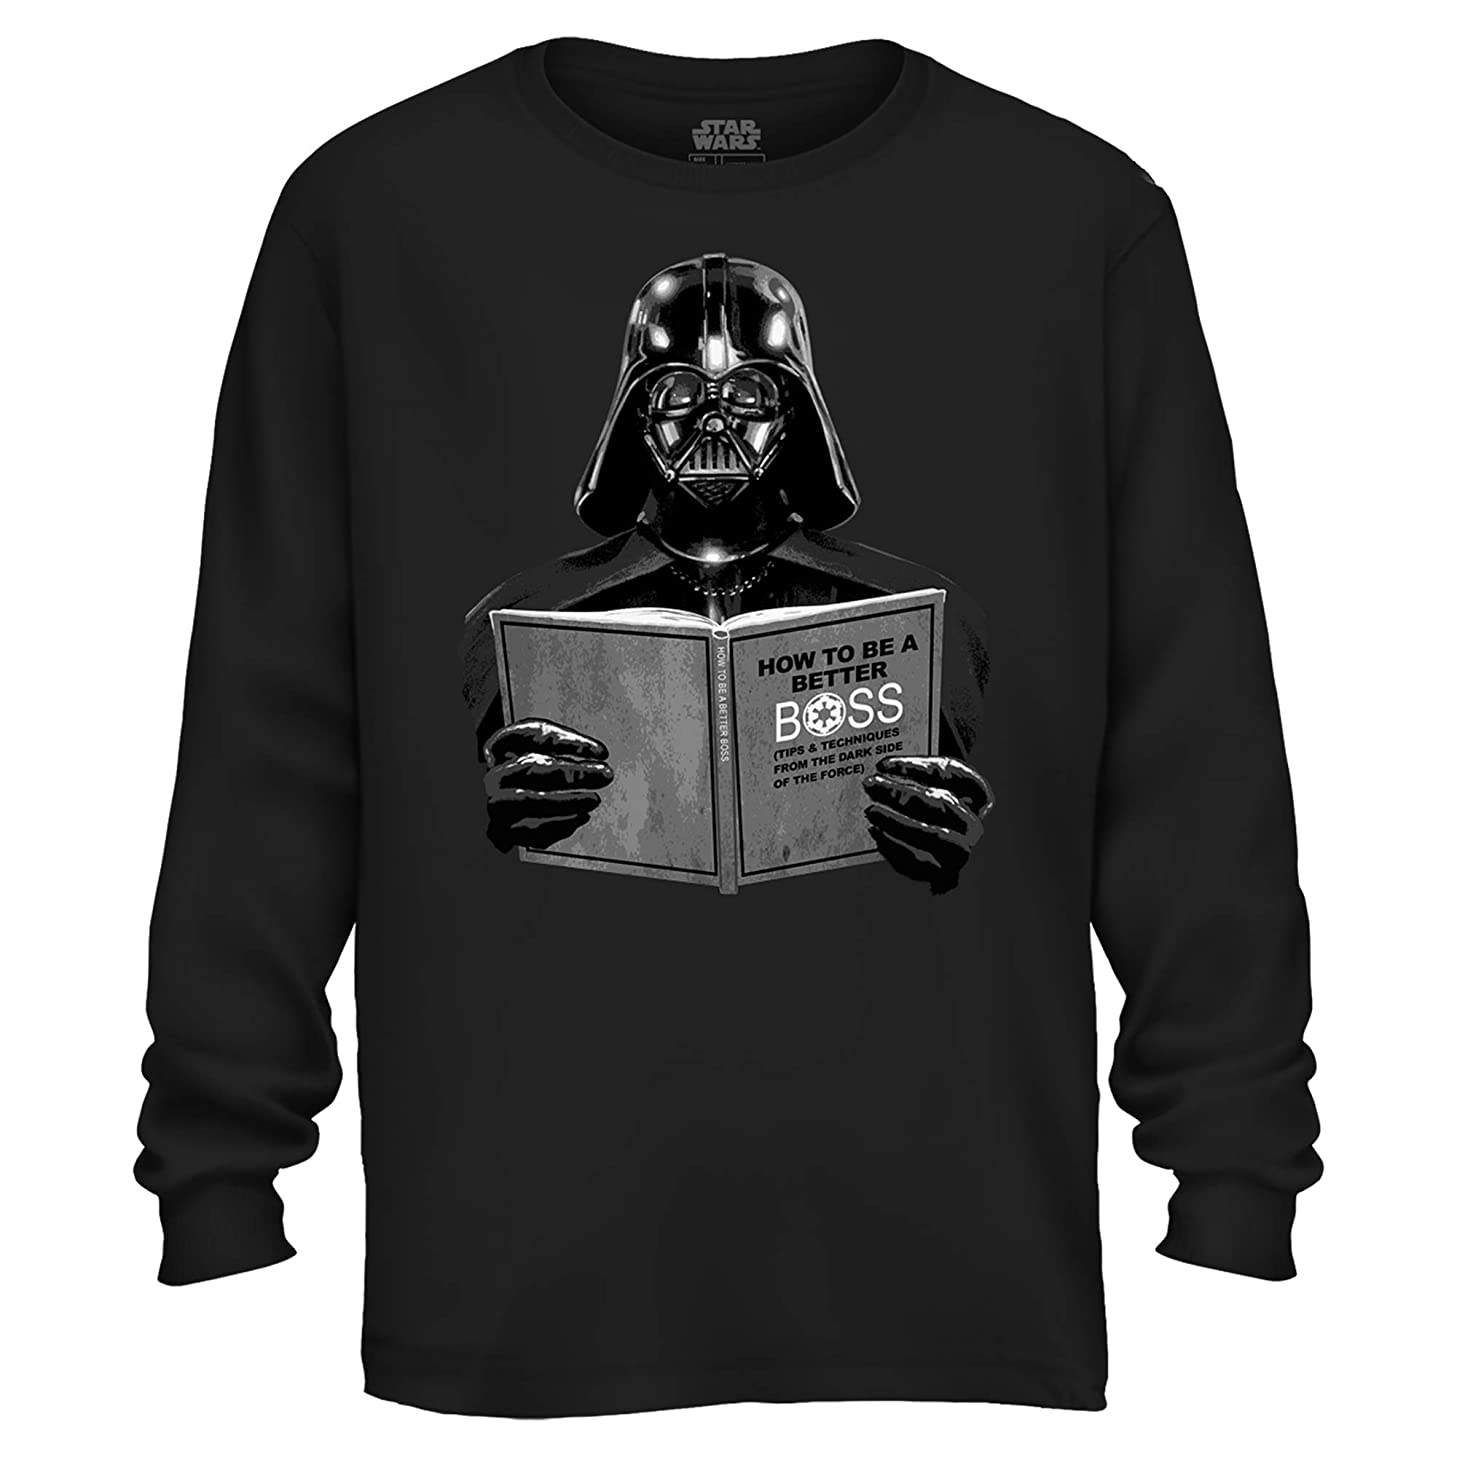 Star Wars Darth Vader Dark Side Empire Funny Humor Pun Adult Men's Graphic Long Sleeve Shirt